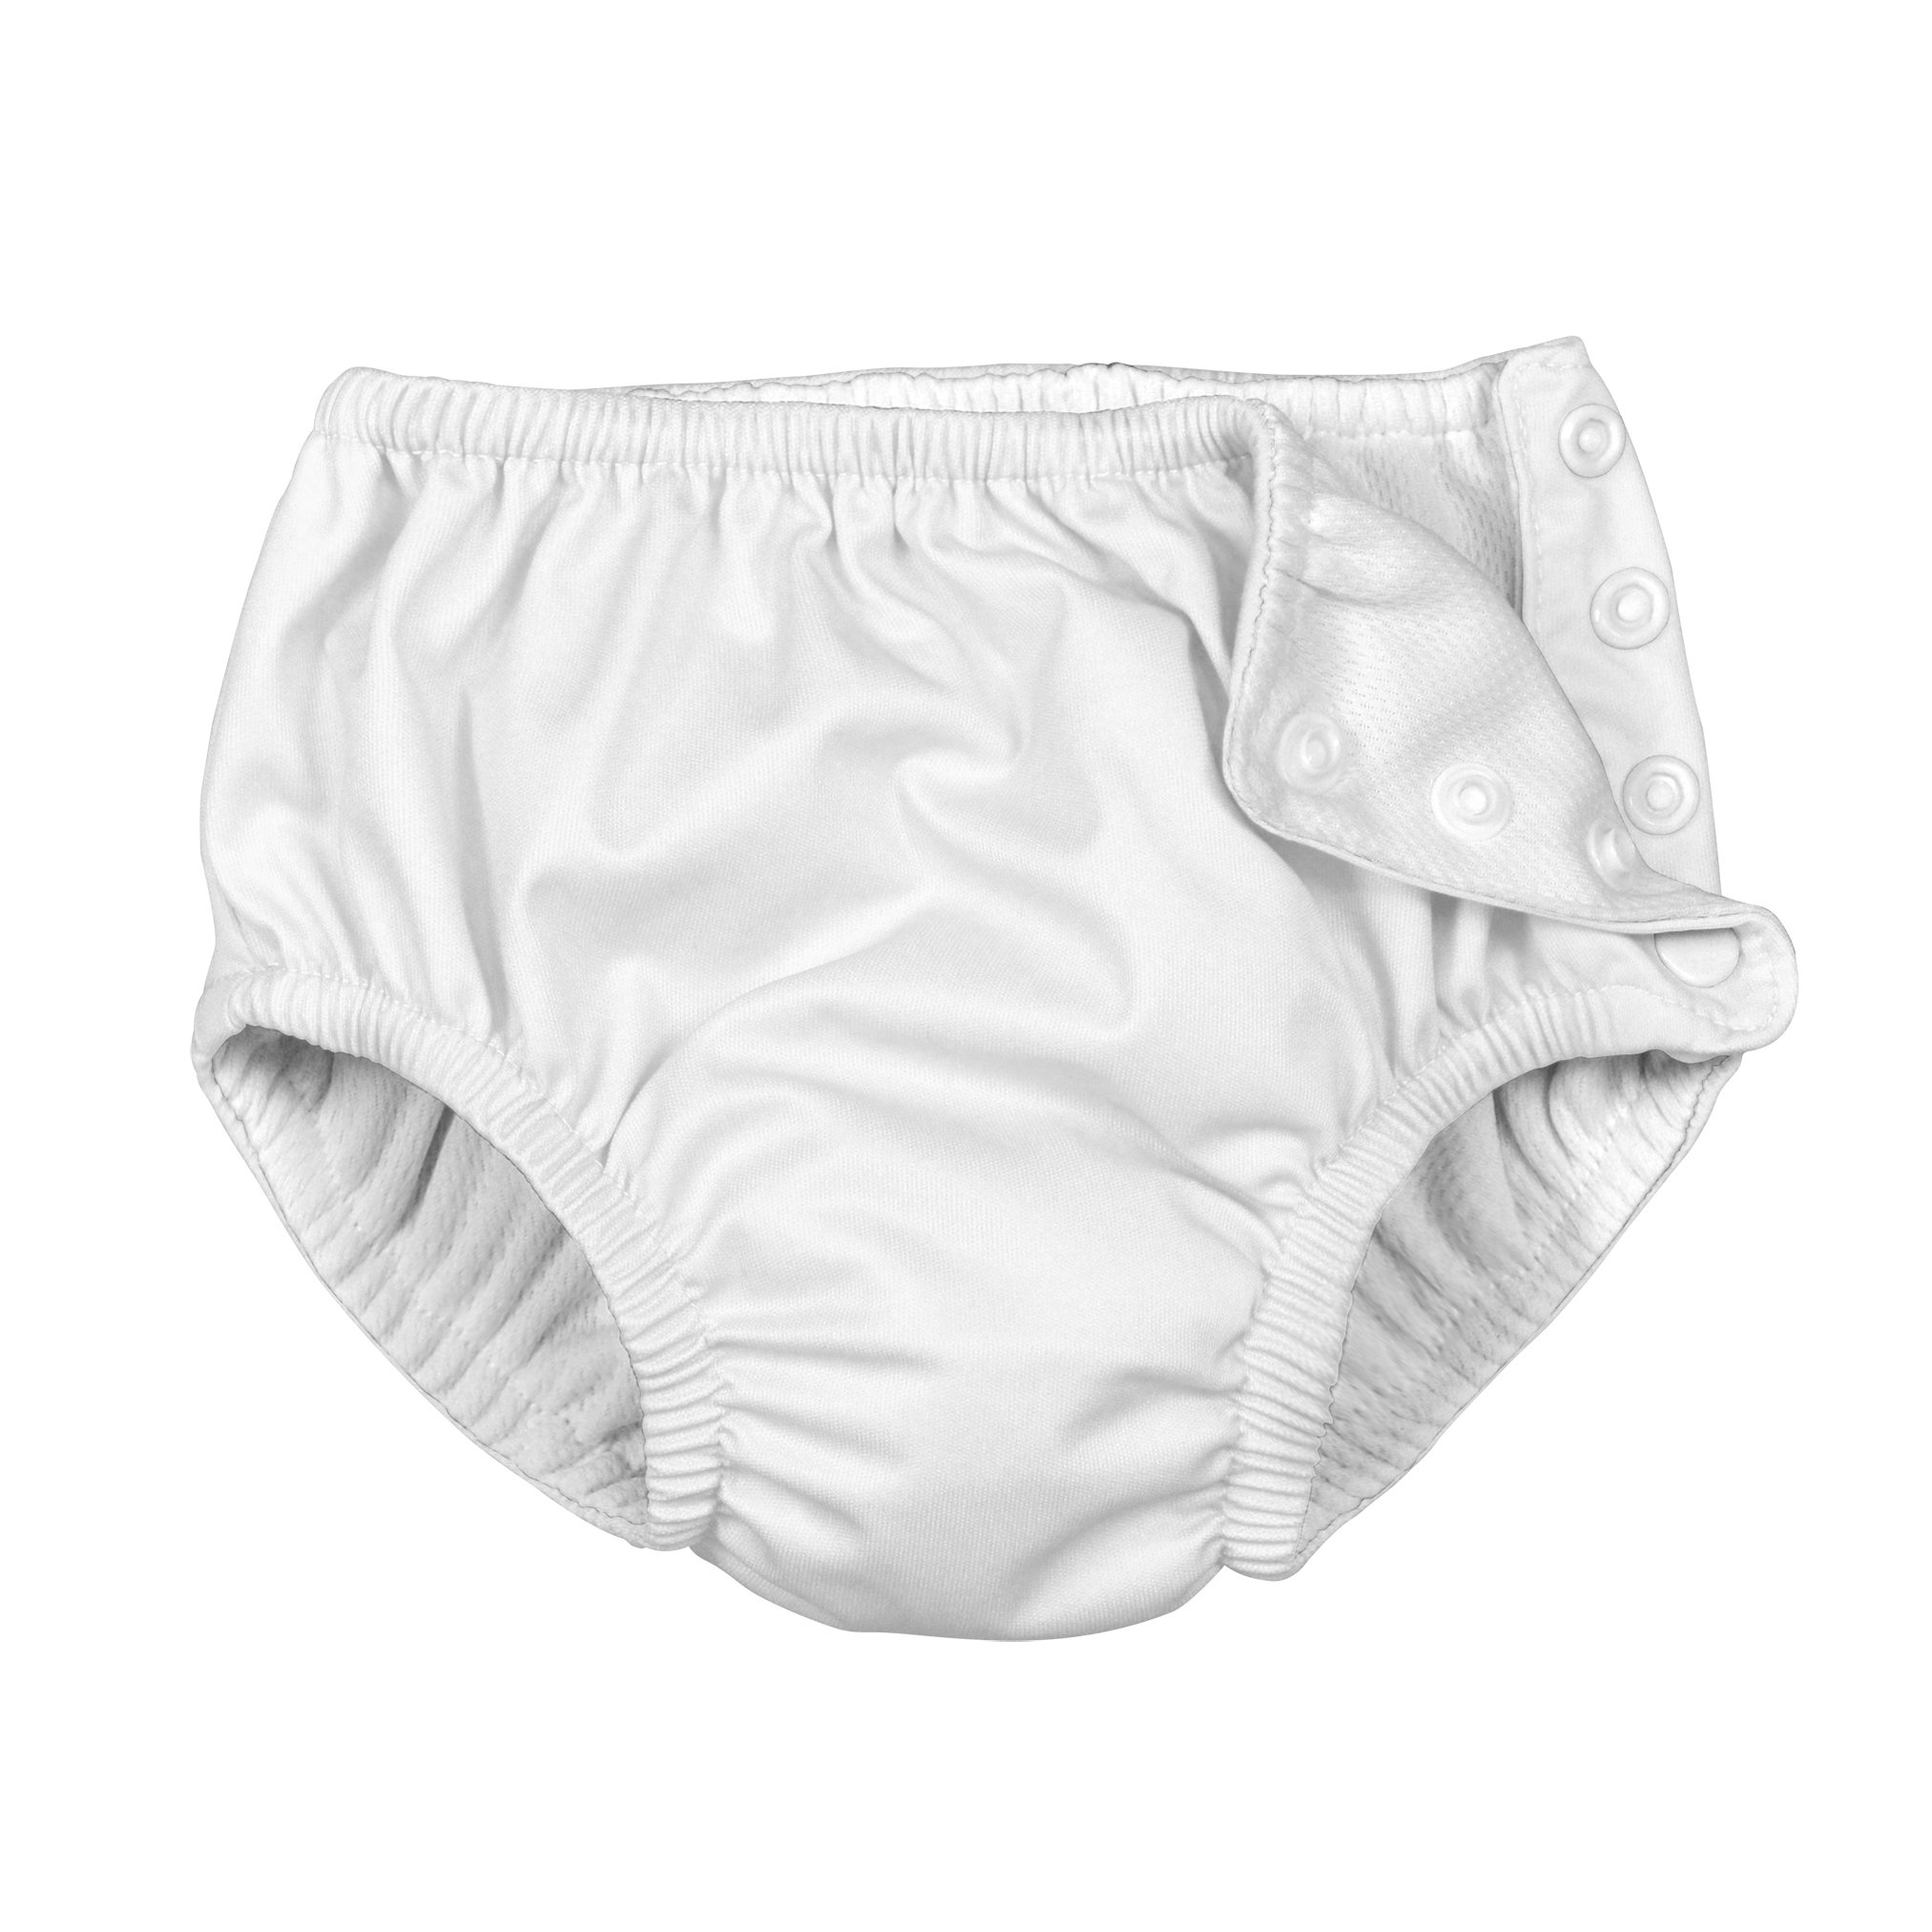 i play.. Baby Toddler Ultimate Reusable Snap Swim Diaper, New White, 3T